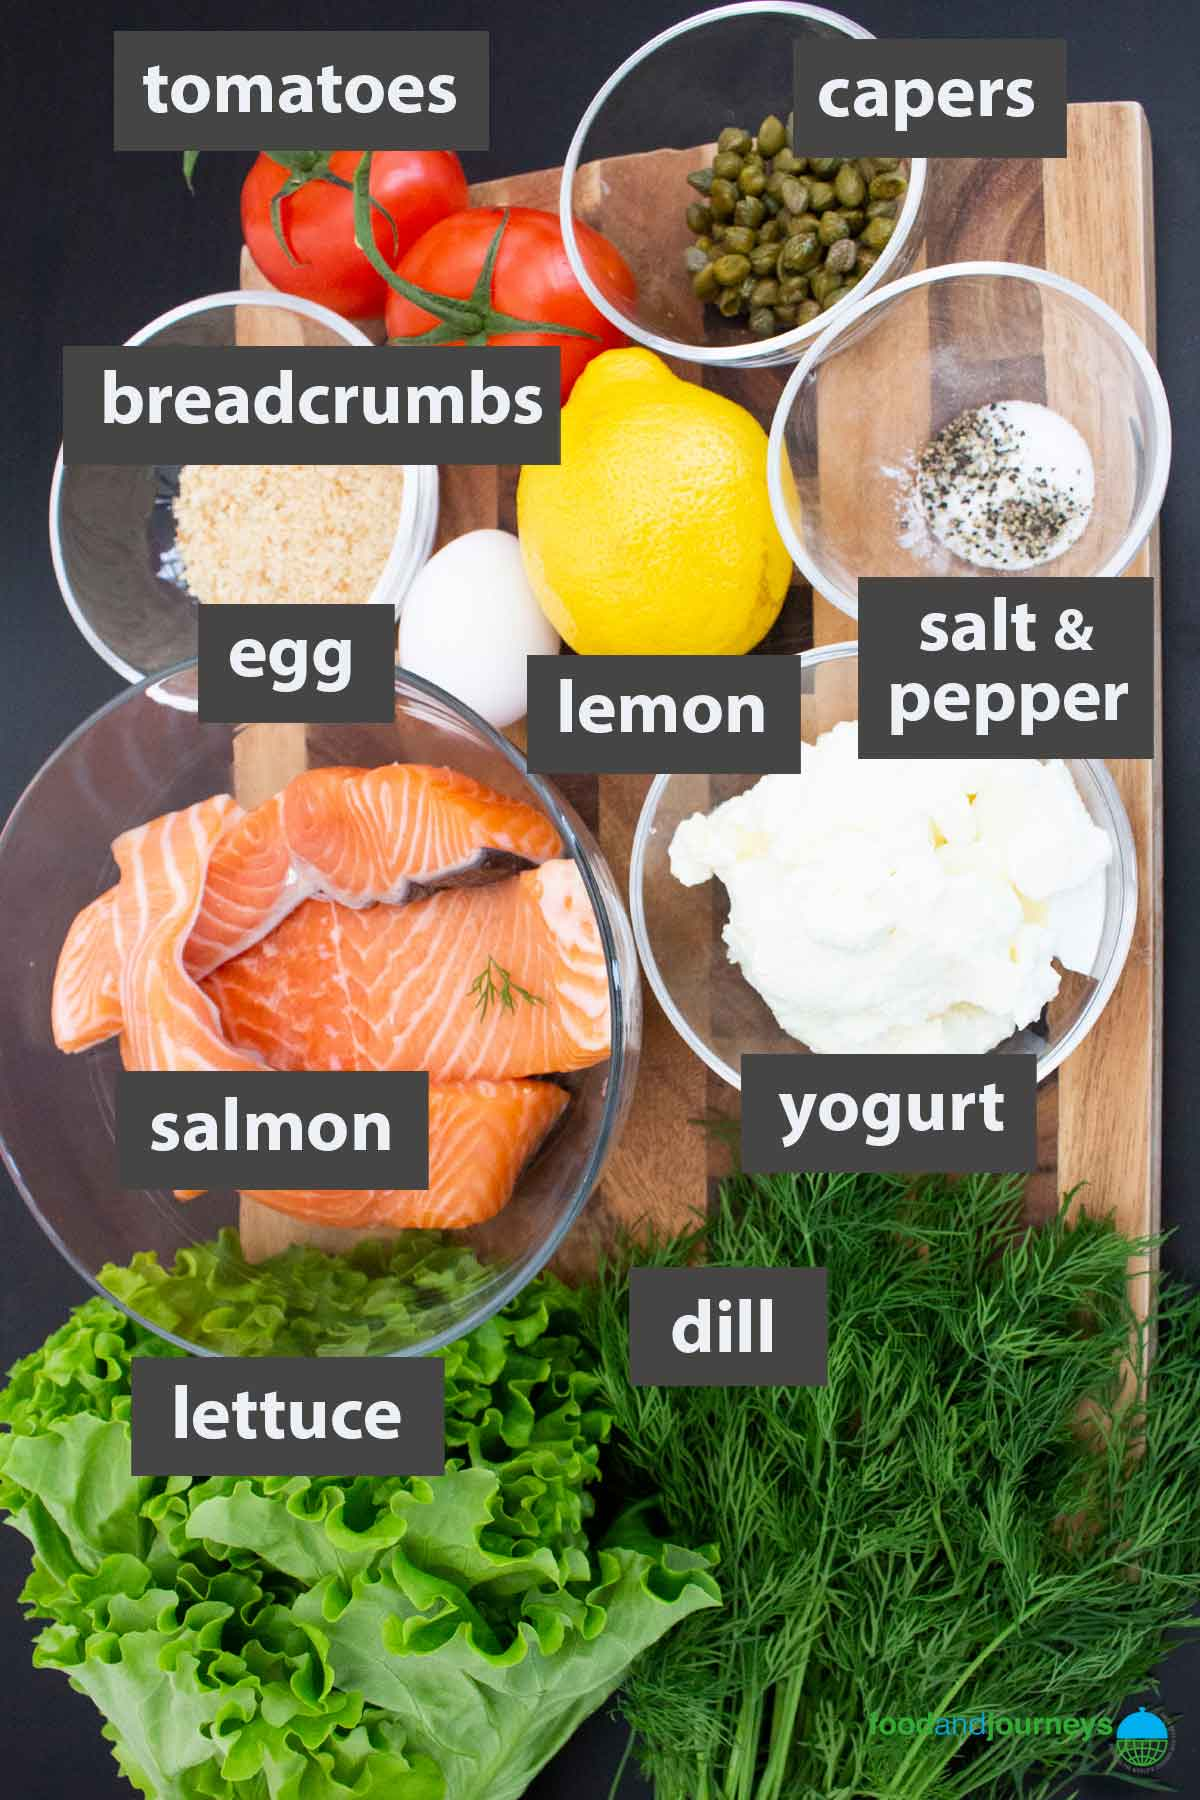 An image showing all the ingredients you need to prepare Swedish Salmon Burger with Dill Yogurt Sauce at home.